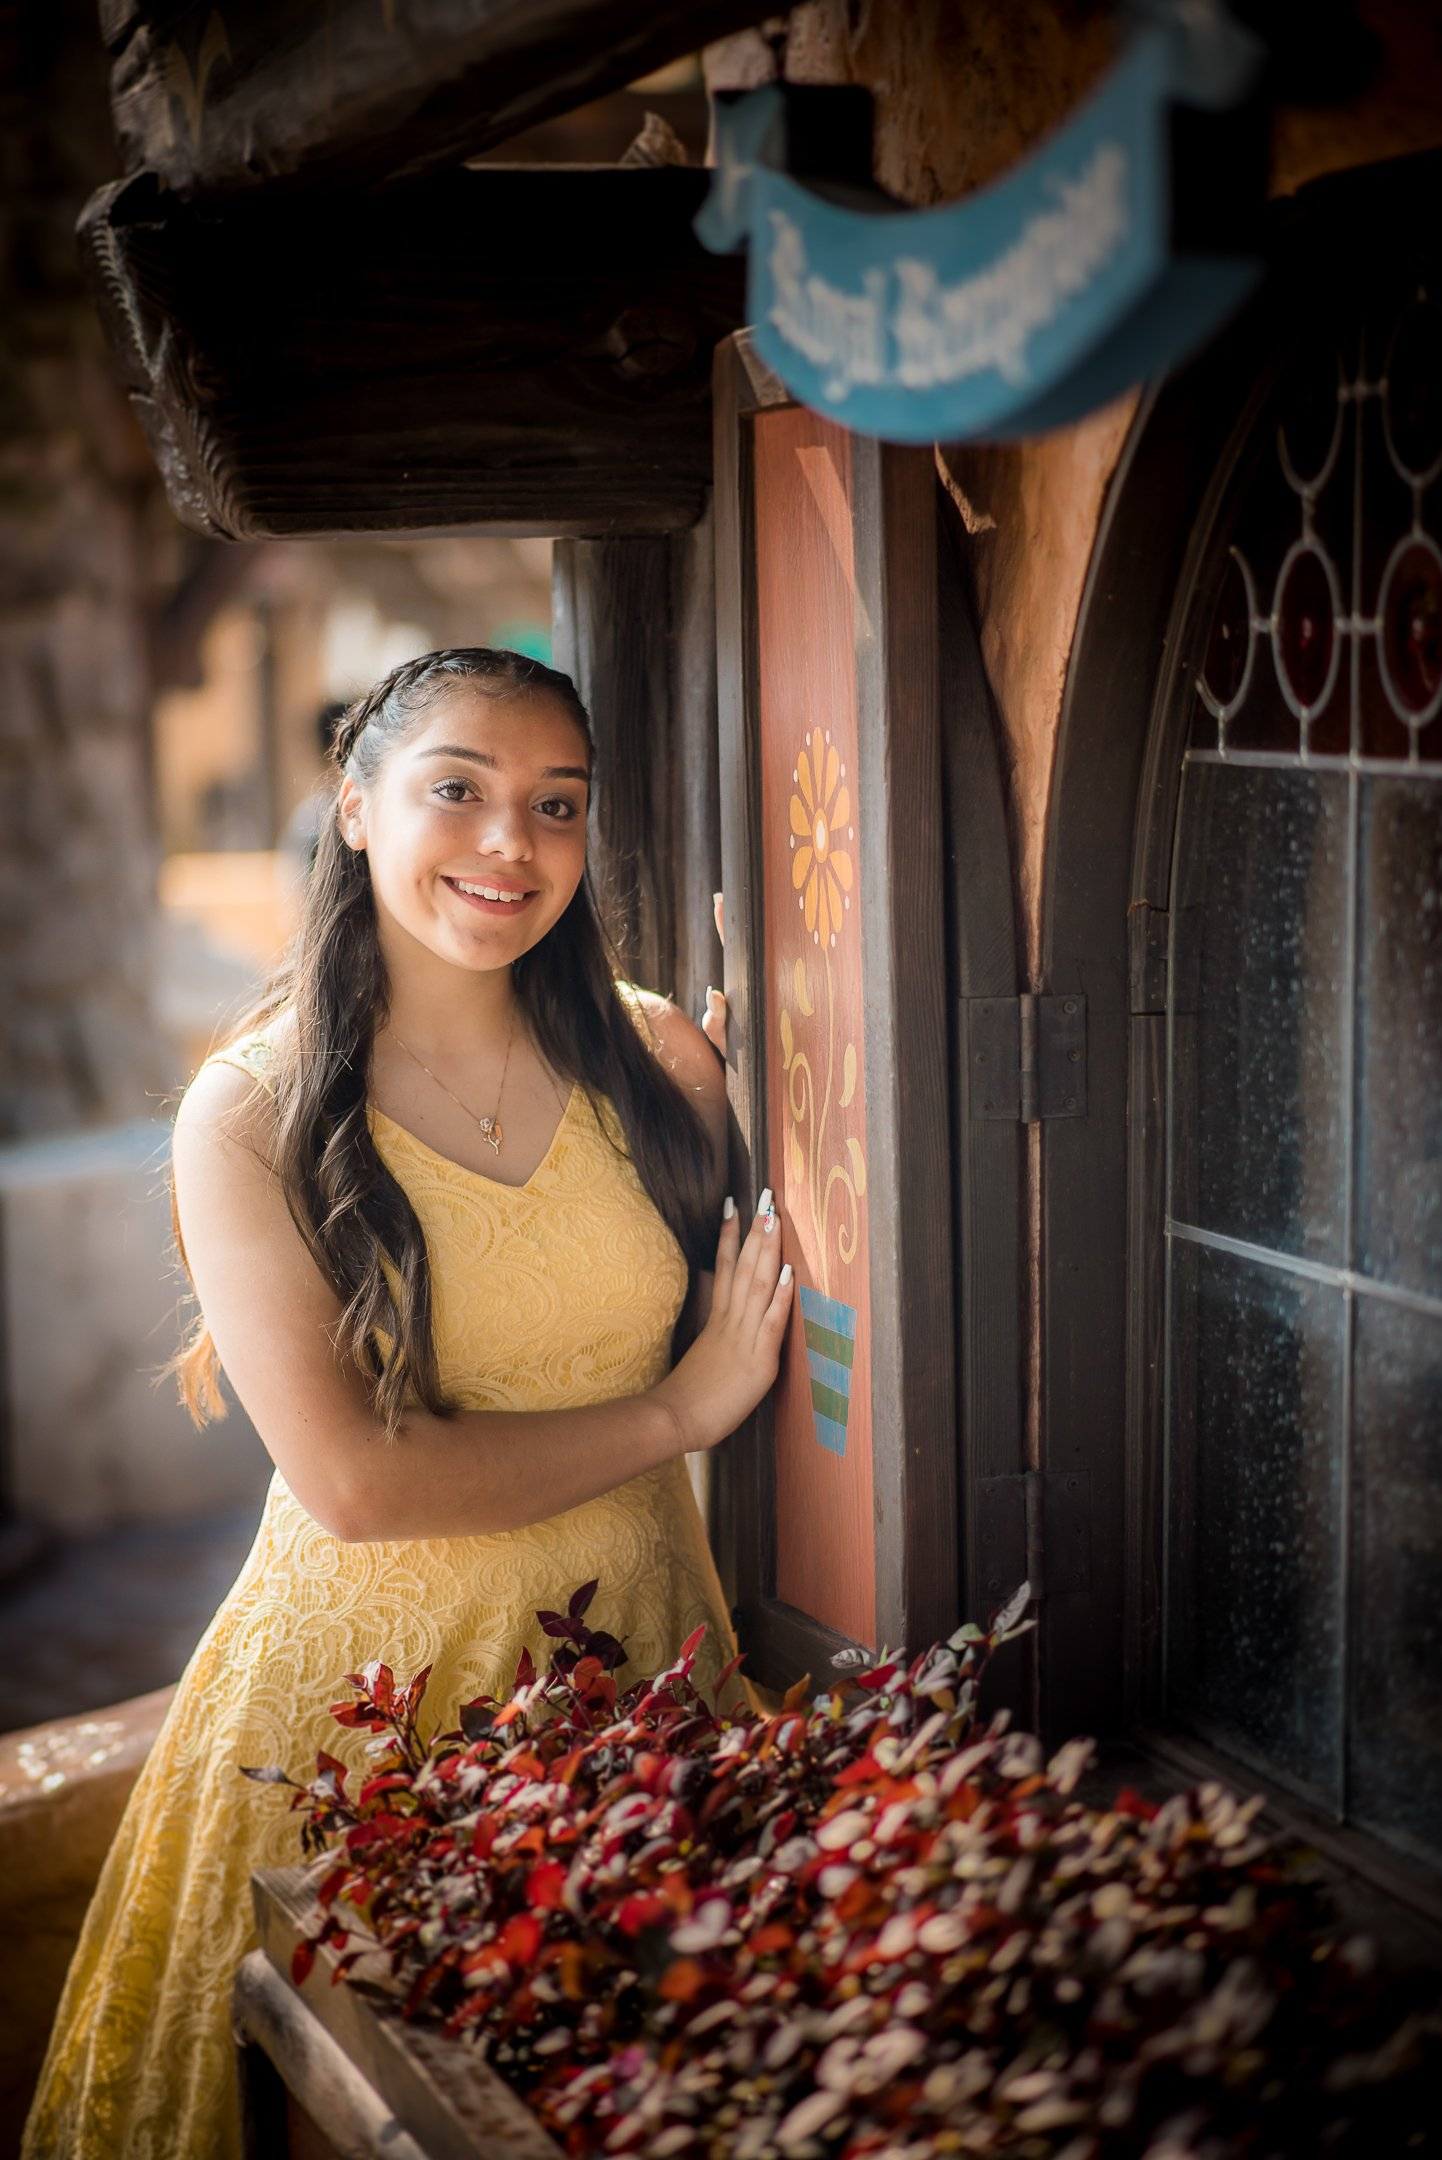 Disneyland Quinceanera photo session - By the Red Rose Tavern